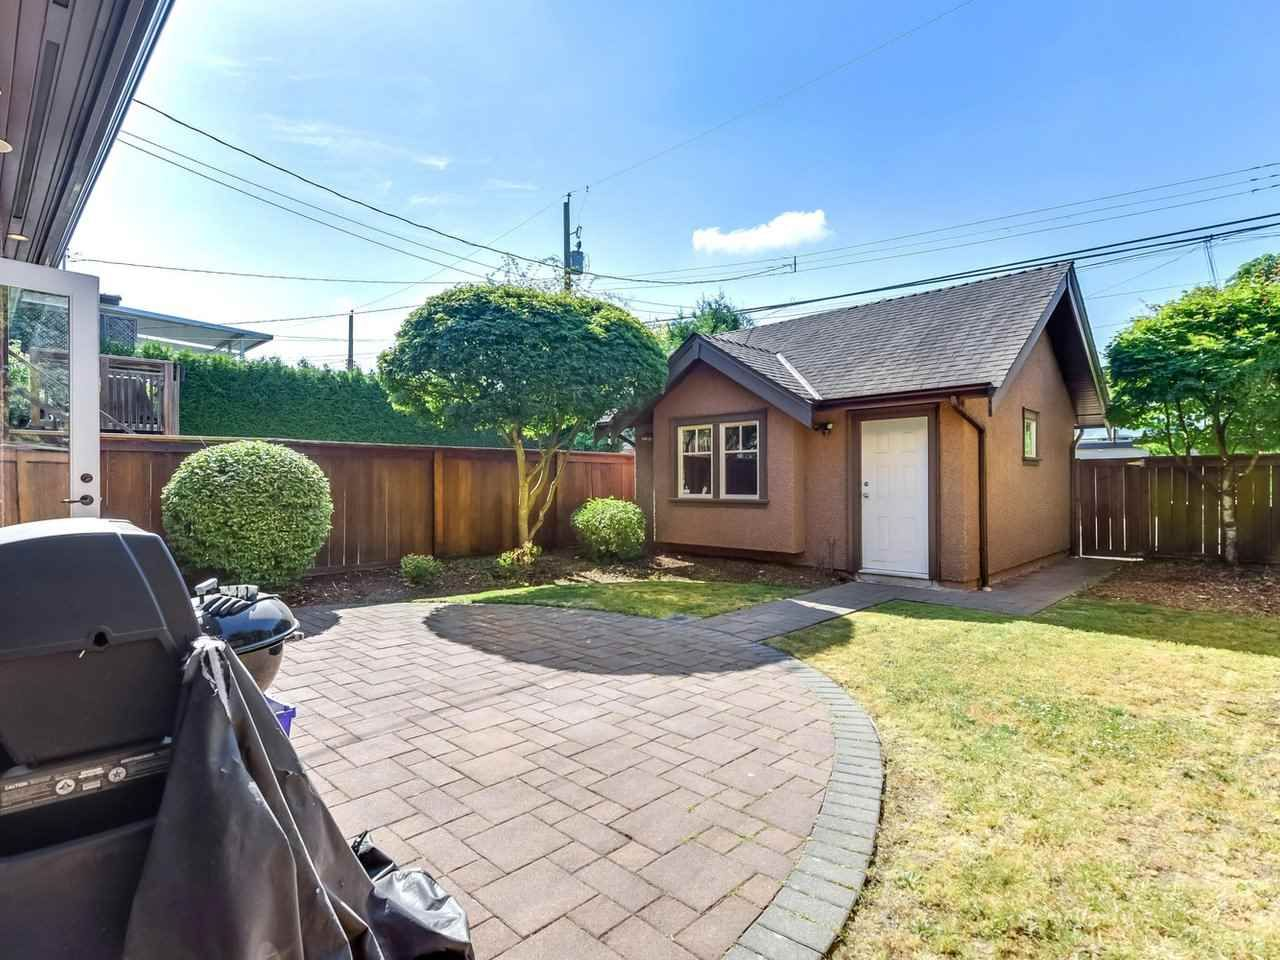 Photo 19: Photos: 694 W 19TH AVENUE in Vancouver: Cambie House for sale (Vancouver West)  : MLS®# R2186365